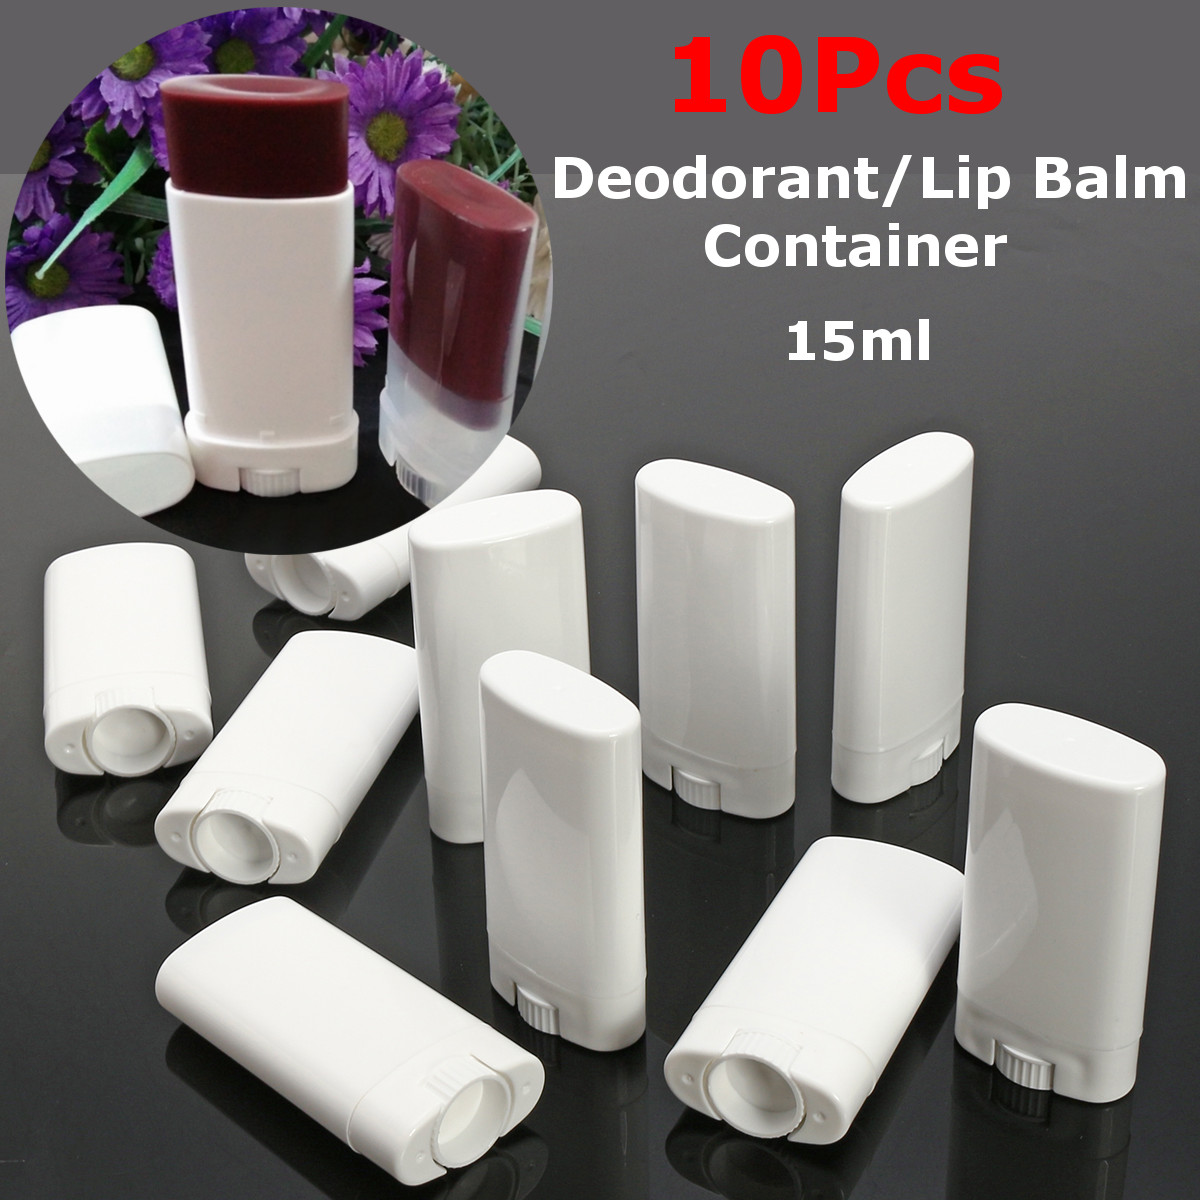 10Pcs 15ml/15g Empty Oval Lip Balm Tube Plastic White Solid Perfume Deodorant Containers Portable Makeup Lipstick Tubes With Lid